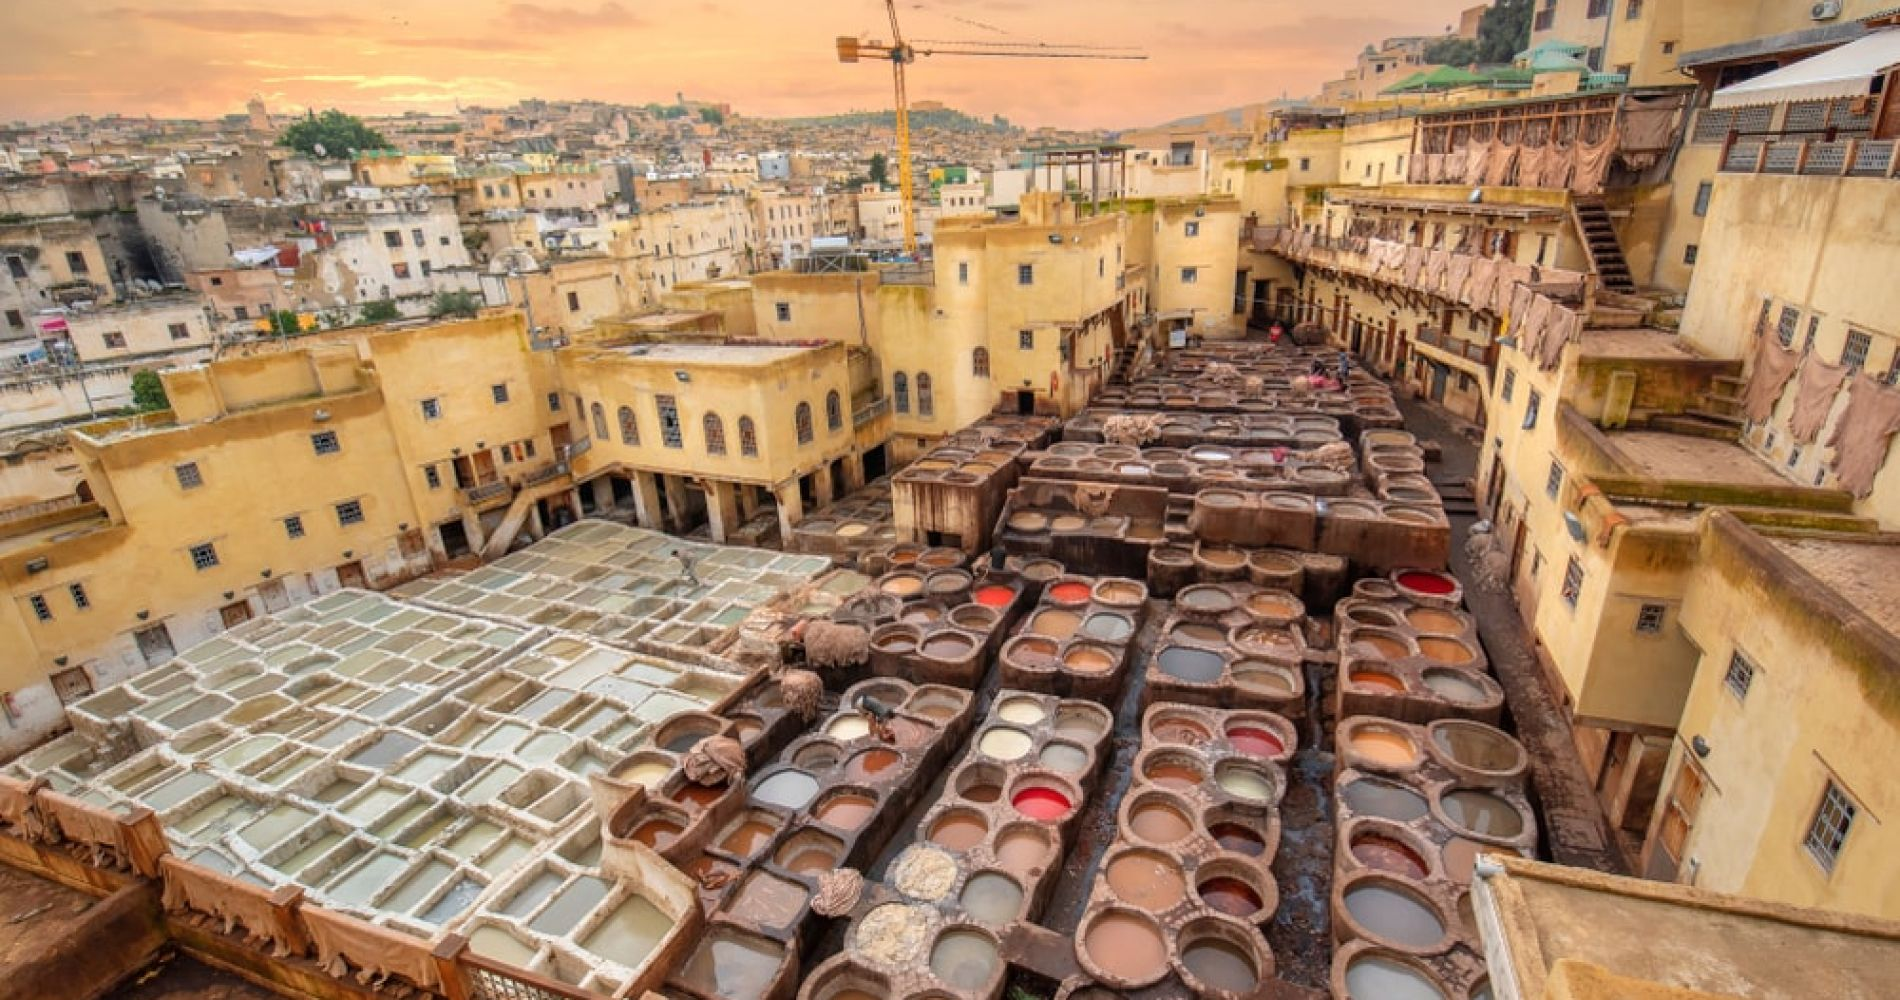 Visit the Oldest City in Morocco - Fez